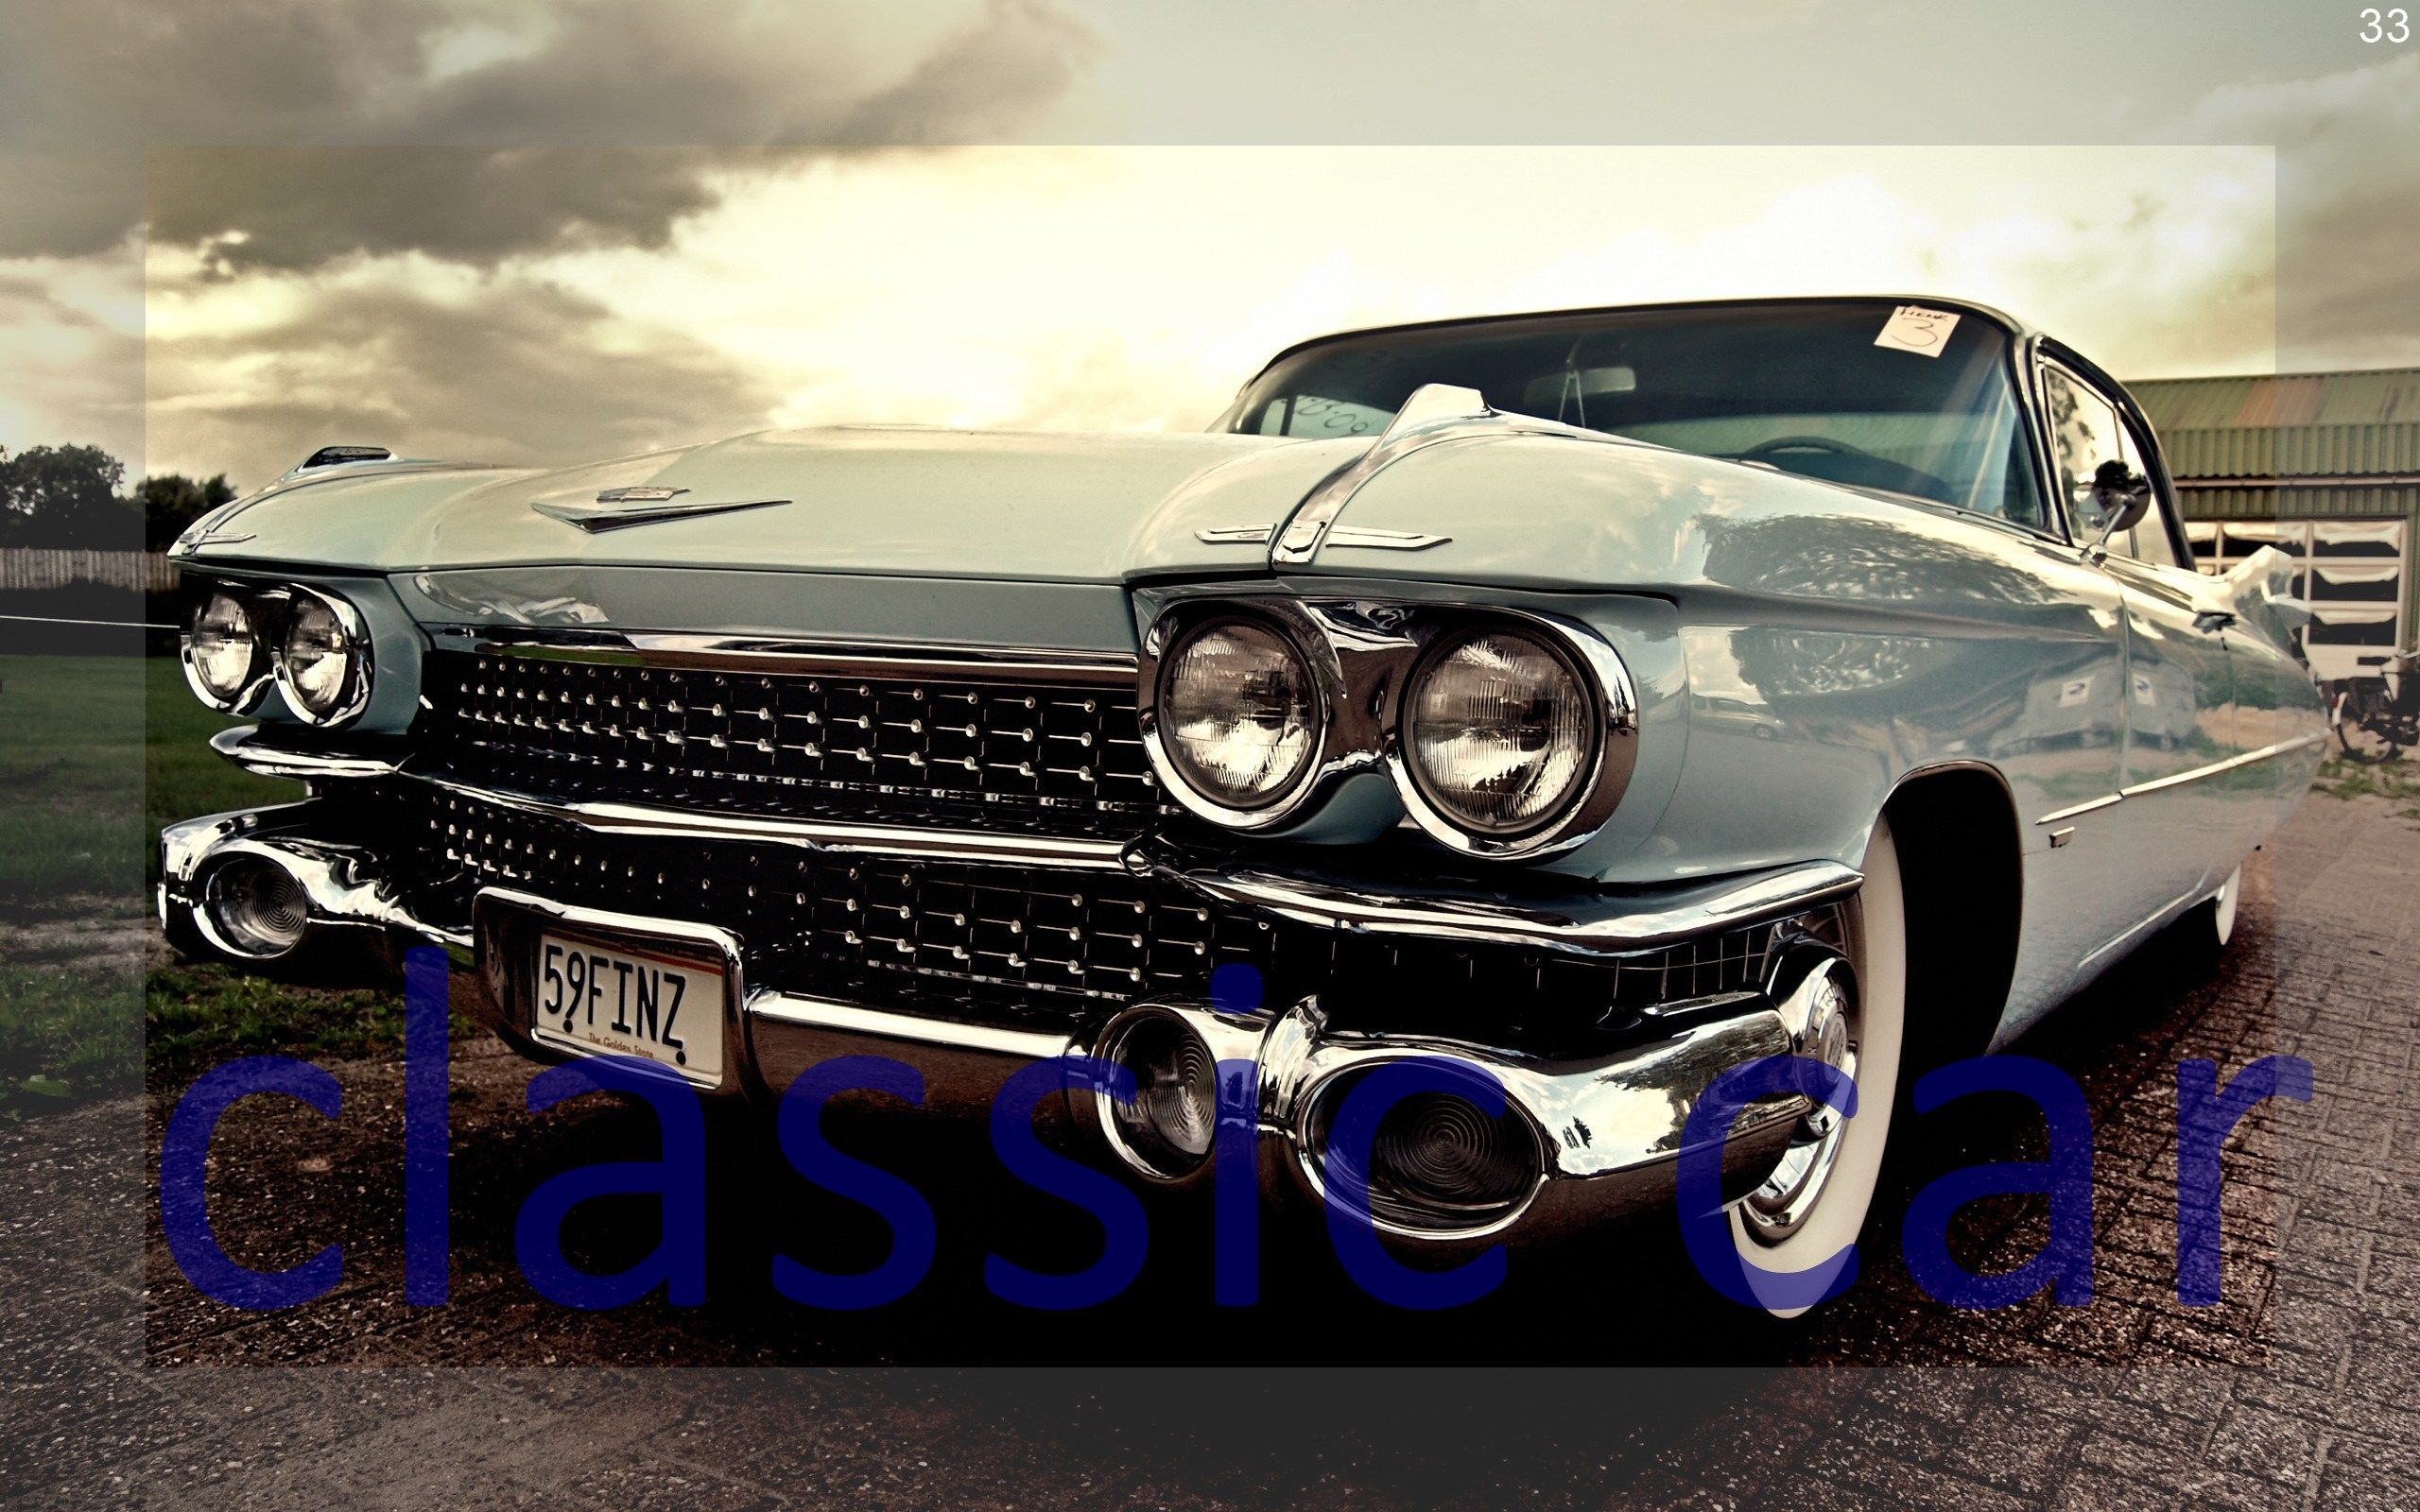 Old Cars Vs Modern Cars Hd Wallpapers Of Cars Classic Cars Wallpaper Classic Cars